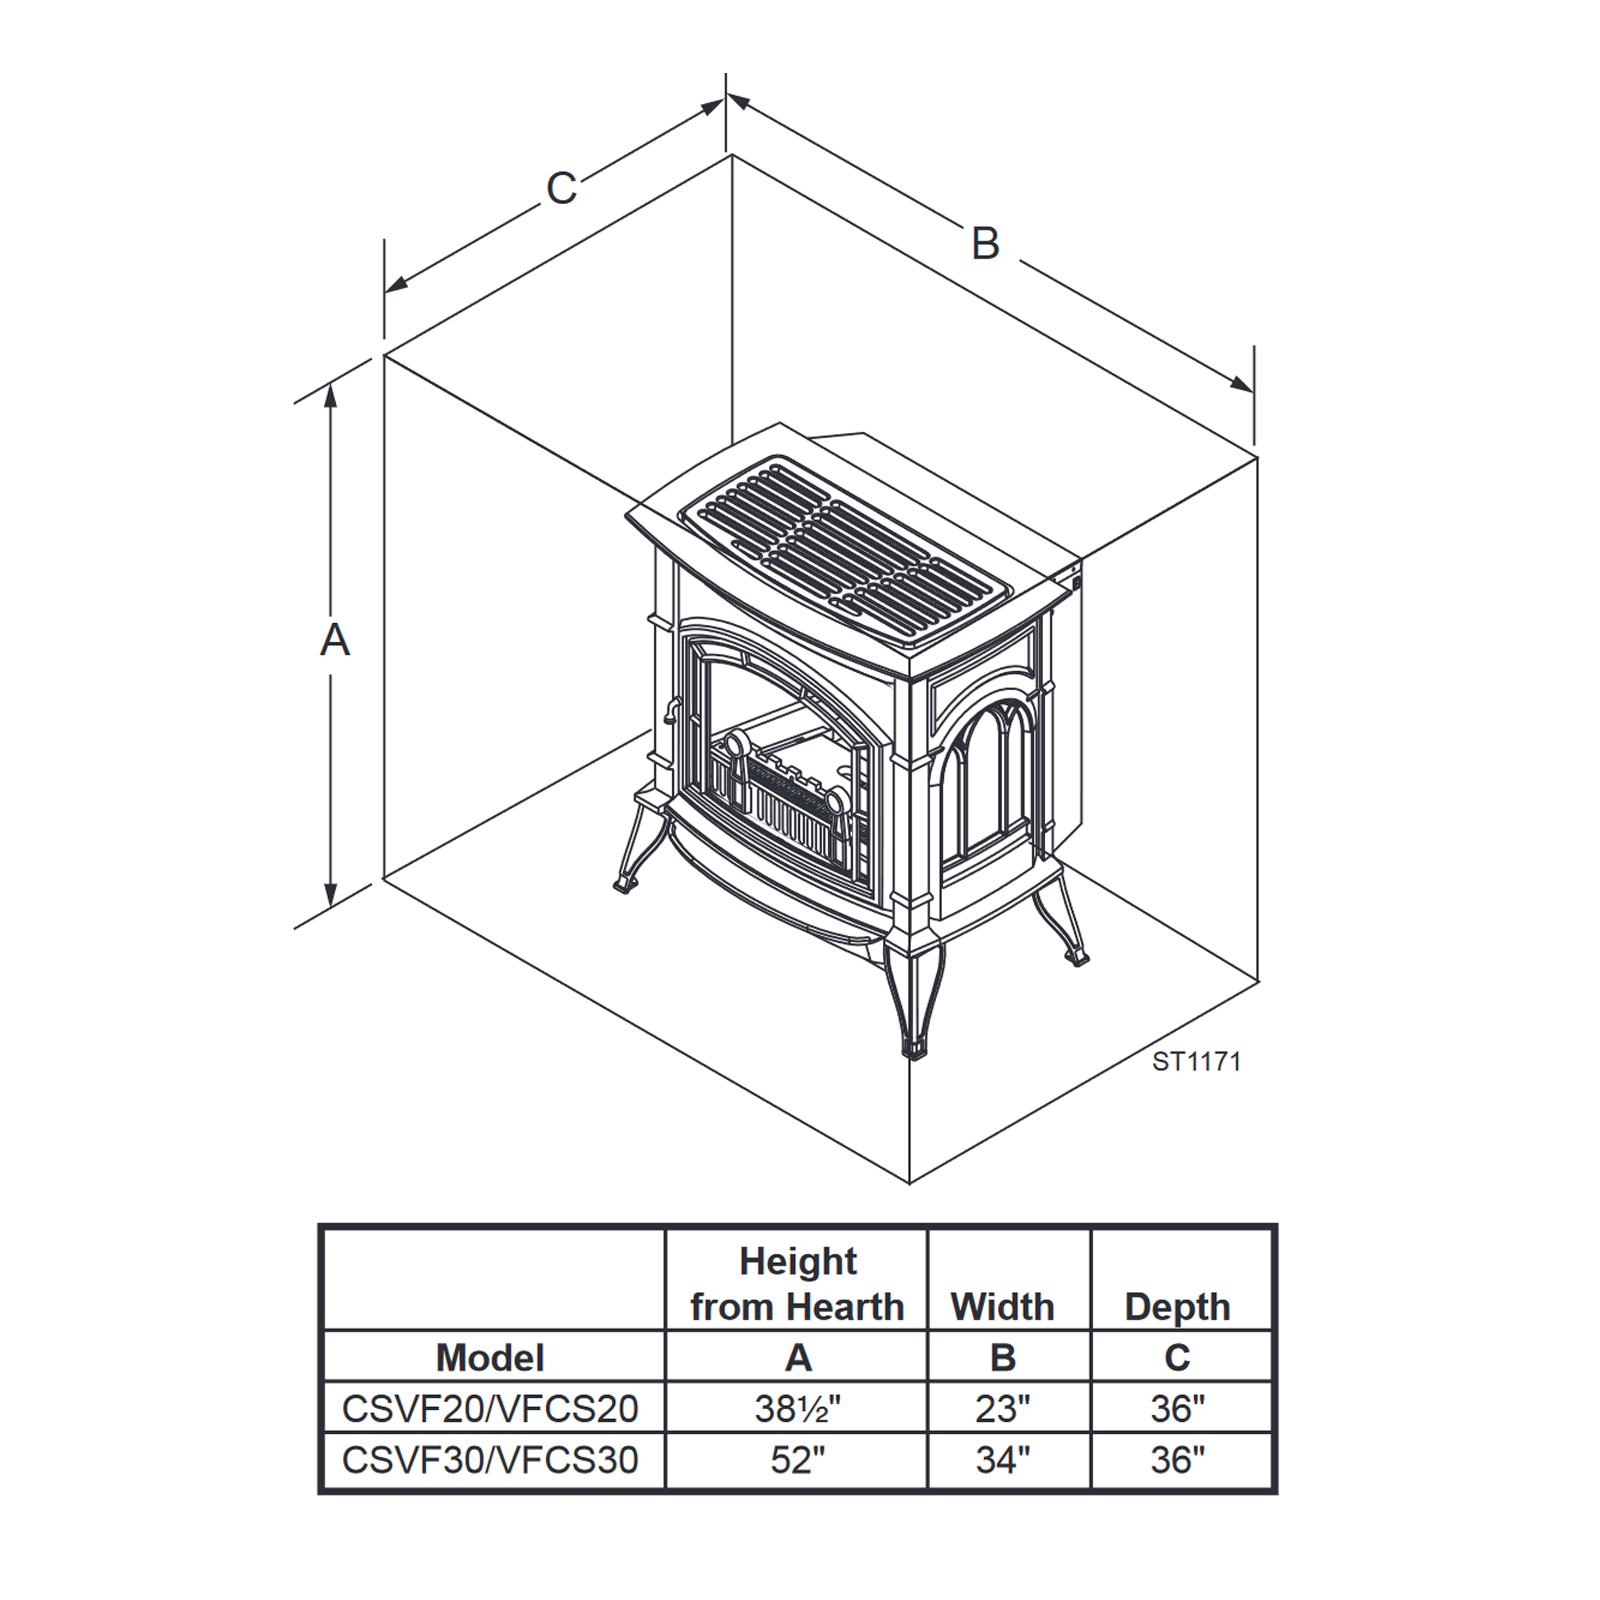 CSVF30 Technical Drawing 2